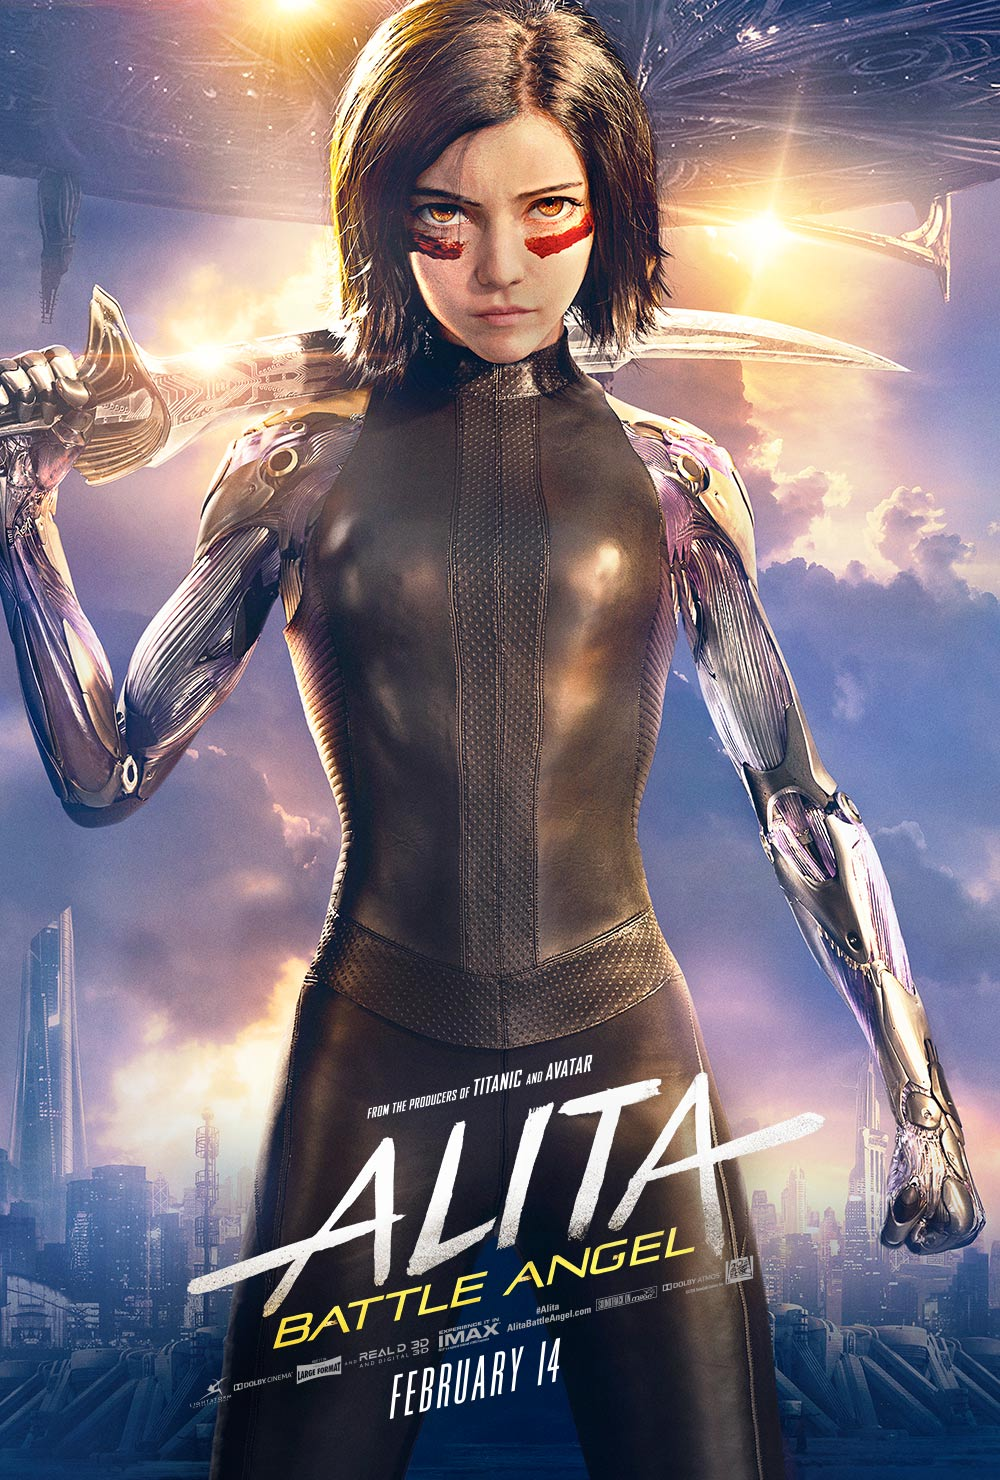 Alita: Battle Angel (2019) - Directed by: Robert RodriguezStarring: Rosa Salazar, Christoph Waltz, Jennifer Connelly, Mahershala Ali, Ed Skrein, Jackie Earle Haley, Keenan Johnson, Lana Condor, Eiza Gonzalez, Edward NortonRated: PG-13Running Time: 2 h 2 mTMM Score: 4 stars out of 5STRENGTHS: Overall Story, World Building, Production Design, Acting, Soundtrack, Action, Faithfulness to Material, Rosa SalazarWEAKNESSES: Cheesy Dialogue Doesn't Always Translate Well To Screen, Storyline Feels A Bit Jumbled, Keenan Johnson, Lots of Exposition